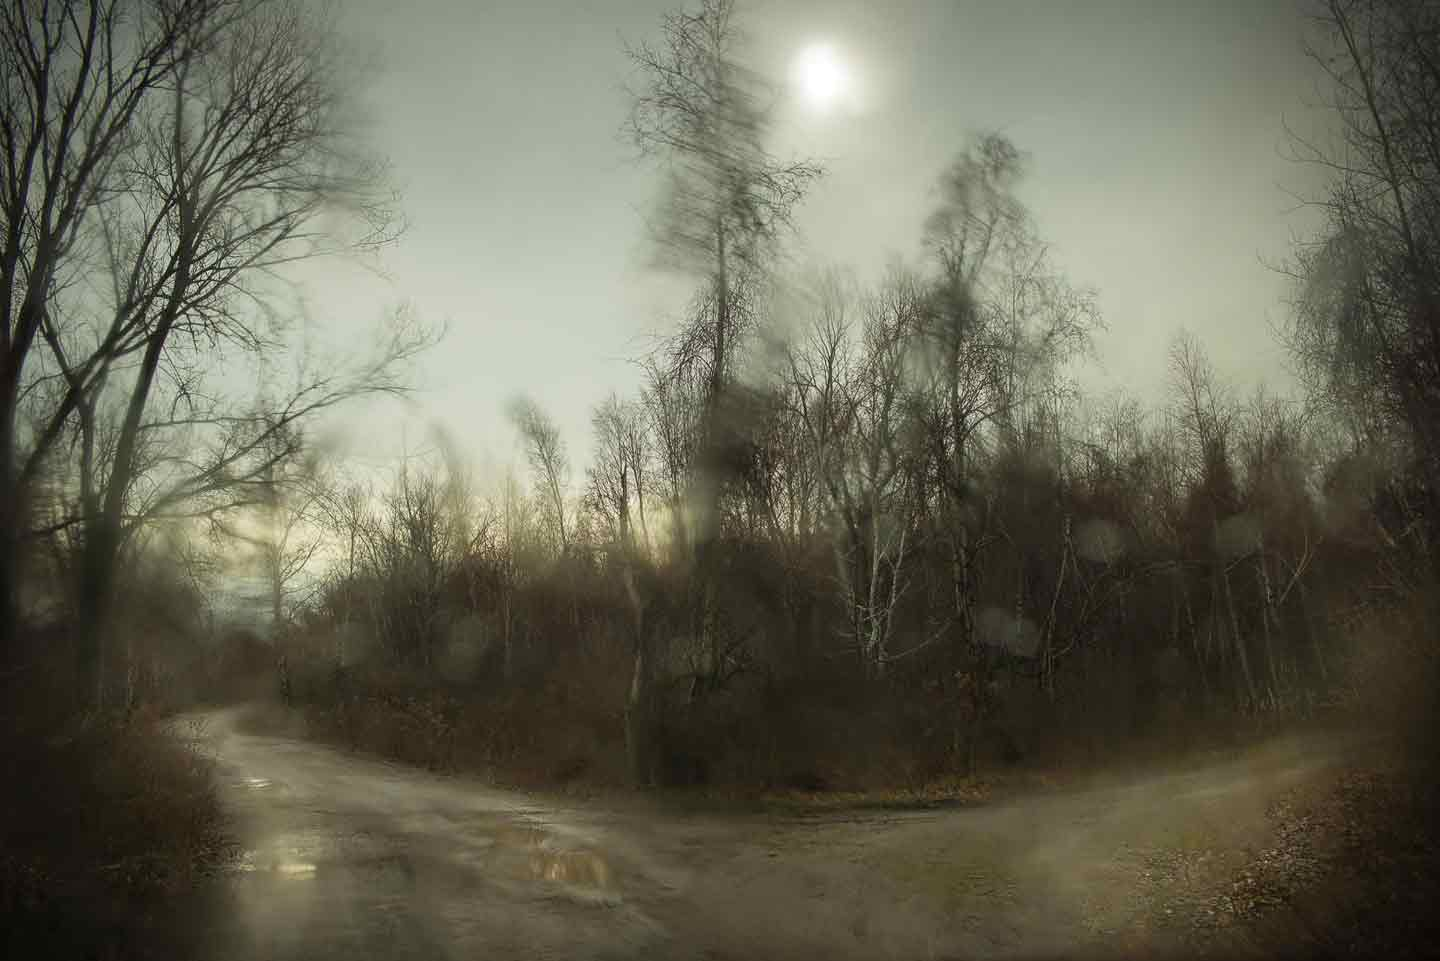 "Todd Hido: #11596-5037, 2015, ed. #2/12 (11-1/2x17-inch Original Archival Pigment Print from ""Bright Black World"" Series)"